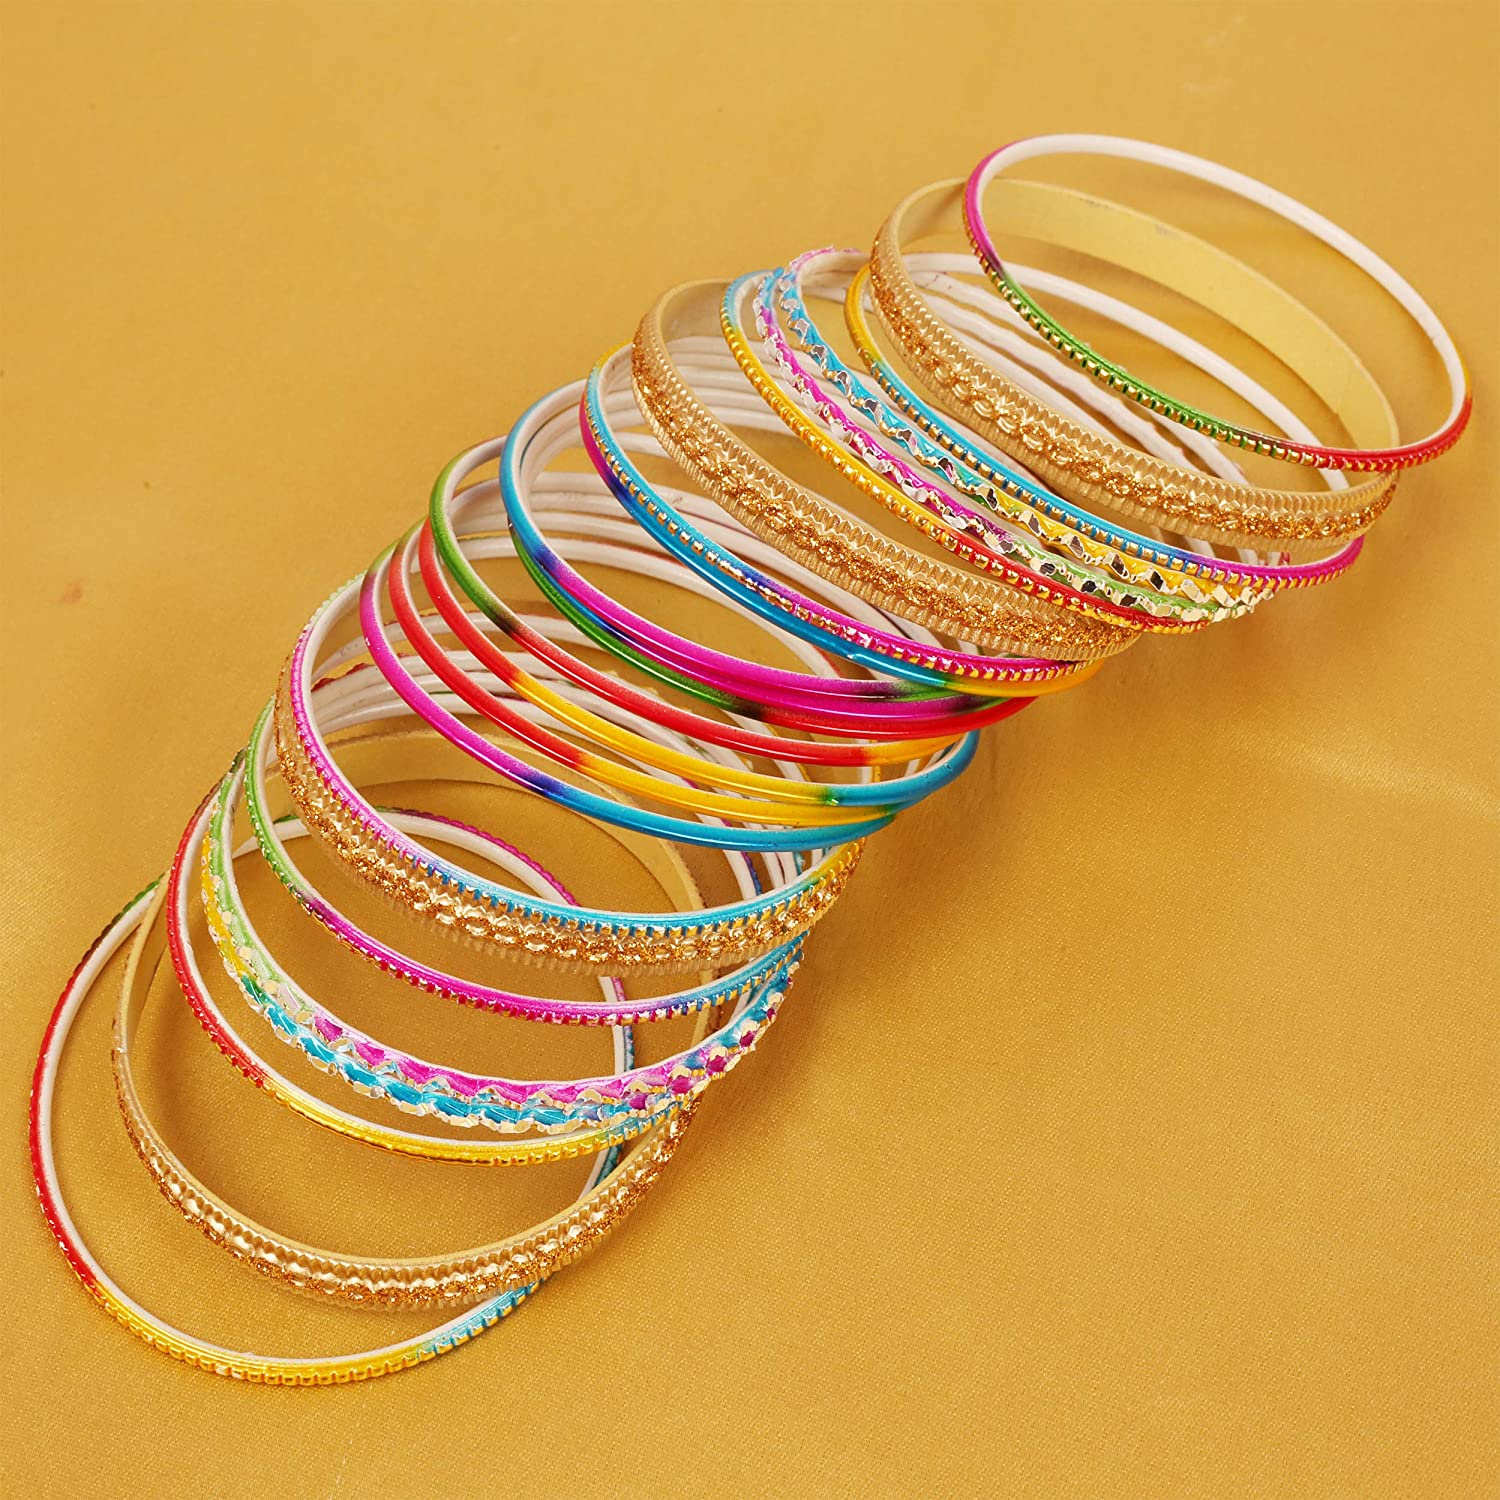 Touchstone Stunning Rainbow Multicolor Bangle Collection. Indian Bollywood Colorful Bangle Bracelet Set of 24 in Antique Gold Tone for Women.